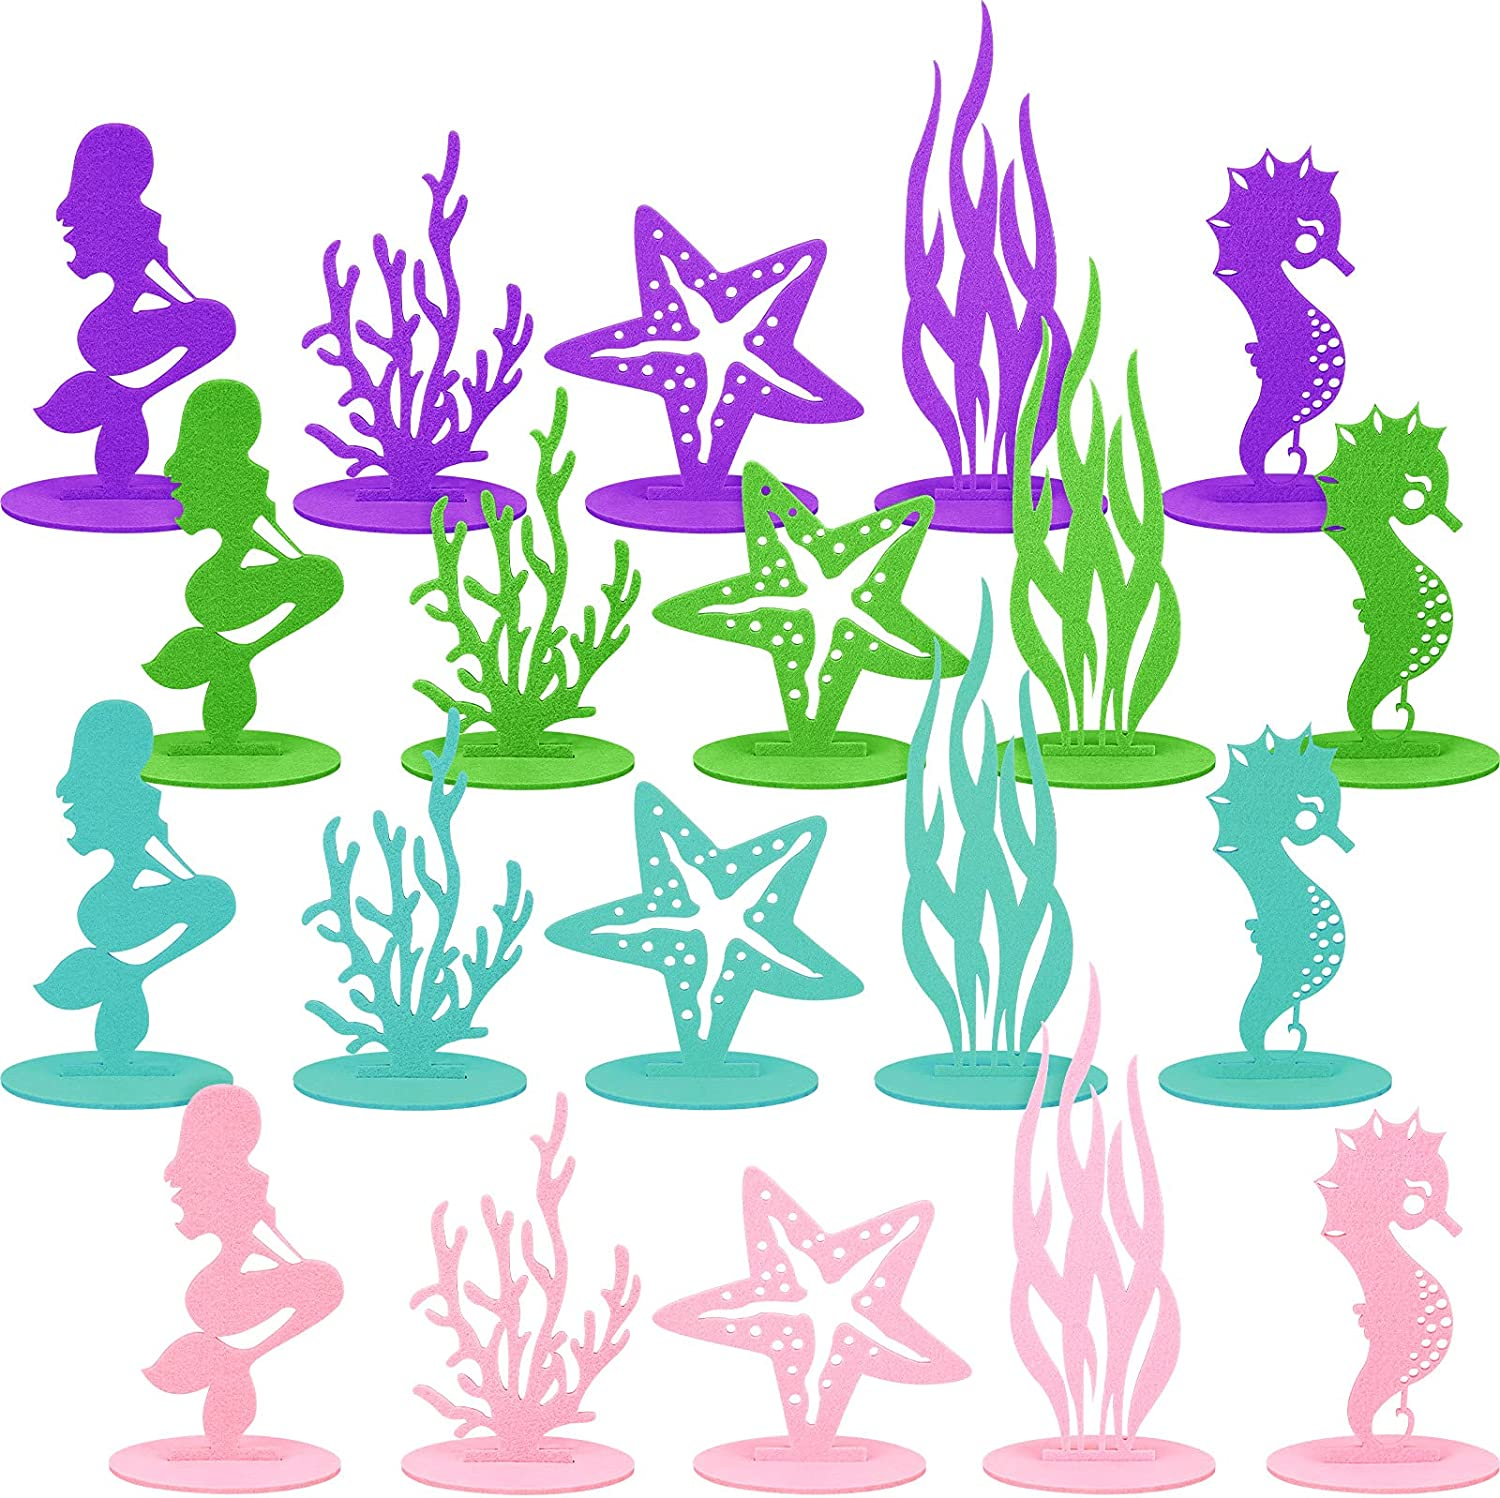 20 Pieces Mermaid Ocean Party Decoration Mermaid Party DIY Felt Seahorse Starfish Seaweed Coral Table Centerpiece Under The Sea Ornament for Girls Mermaid Theme Baby Shower Birthday Decor Supplies